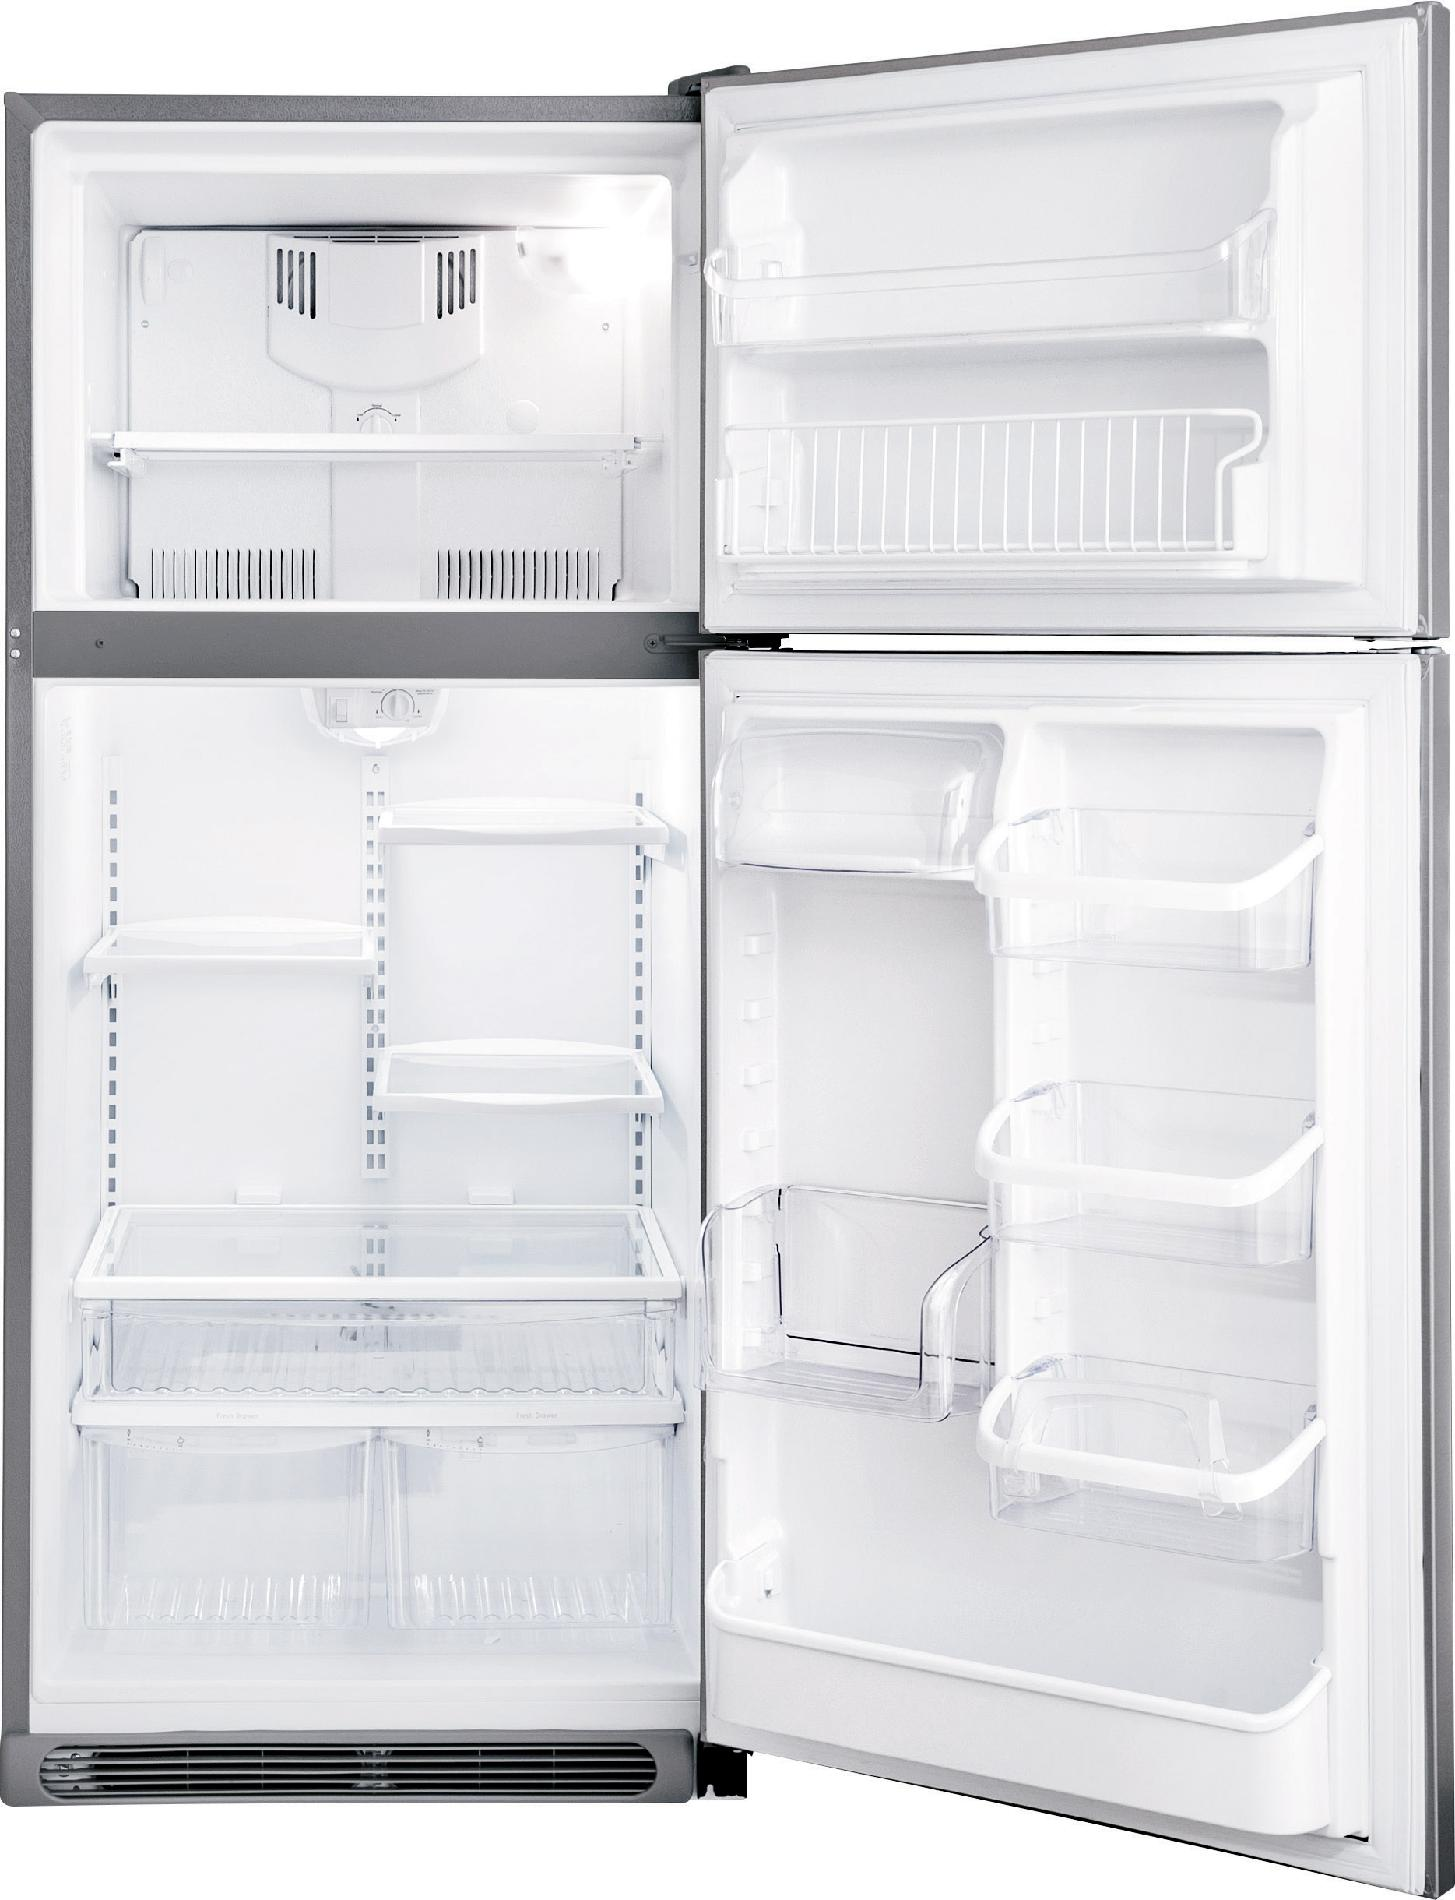 Frigidaire Gallery Gallery 20.6 cu. ft. Top-Freezer Refrigerator - Stainless Steel